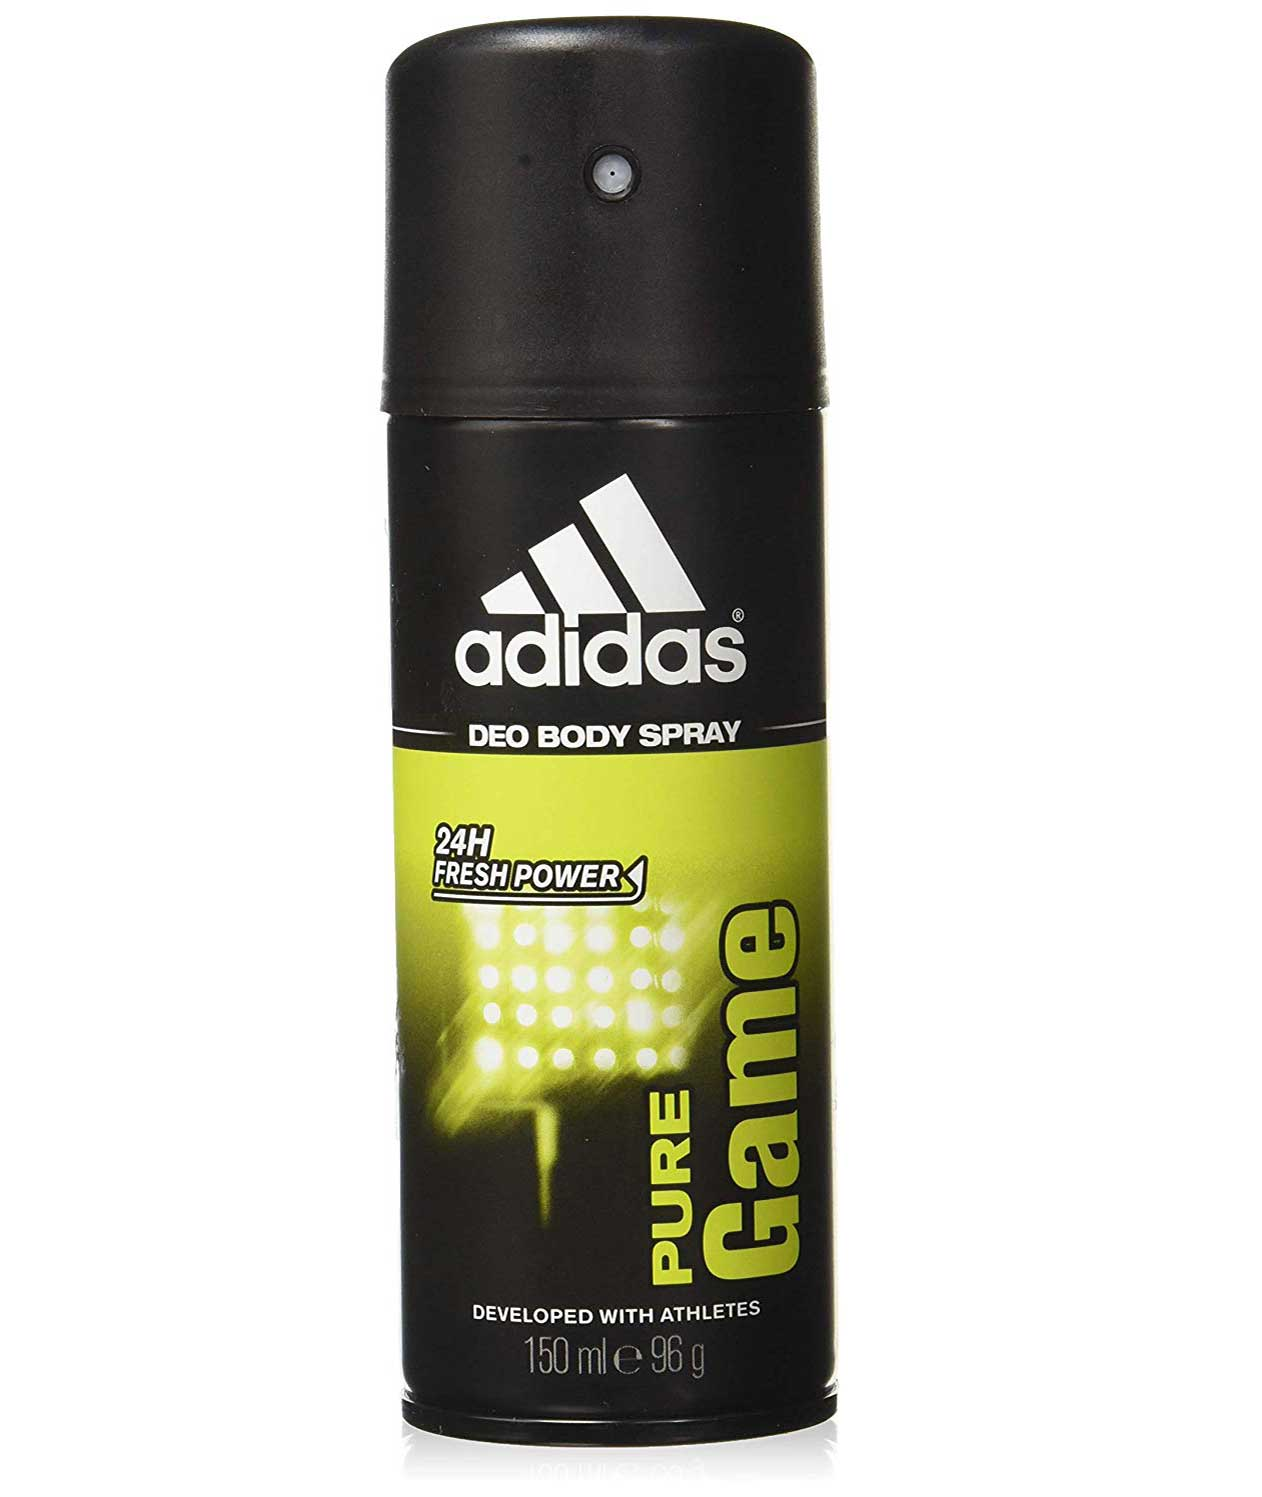 Adidas Pure Game Deodorant Body Spray for Men Combo (Pack of 2), 150ml